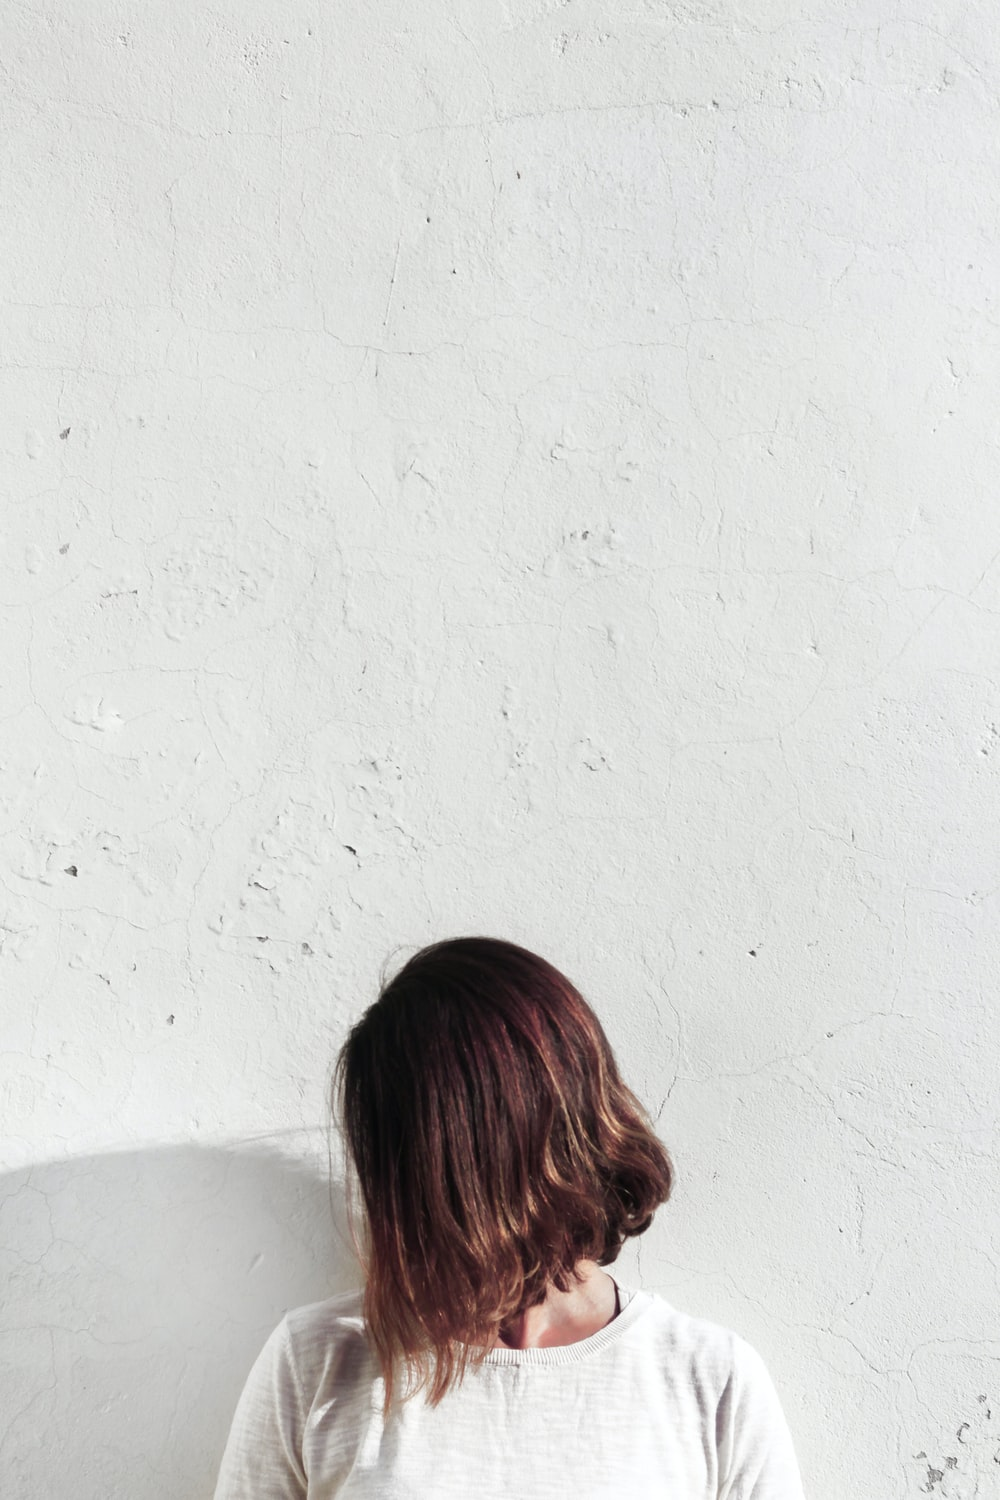 woman in white shirt leaning on wall during daytime